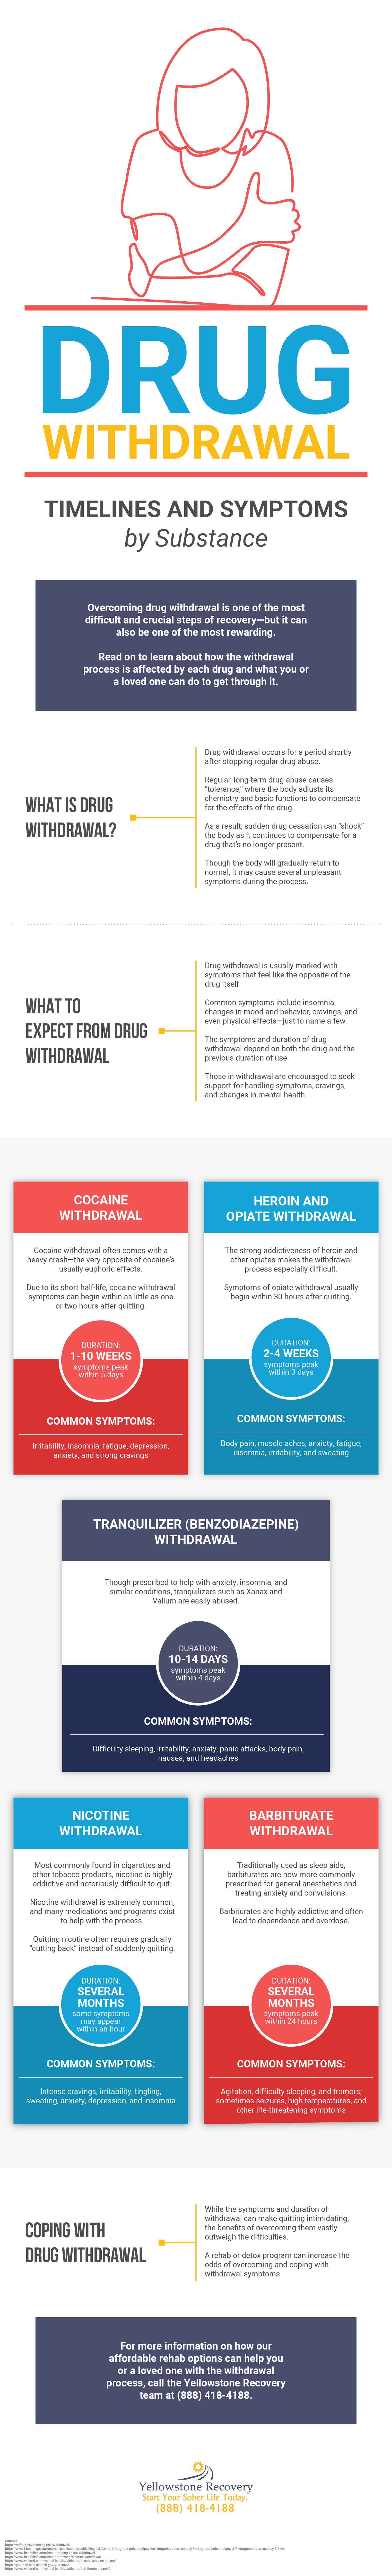 Drug Withdrawal Timeline and Symptoms (Infographic)